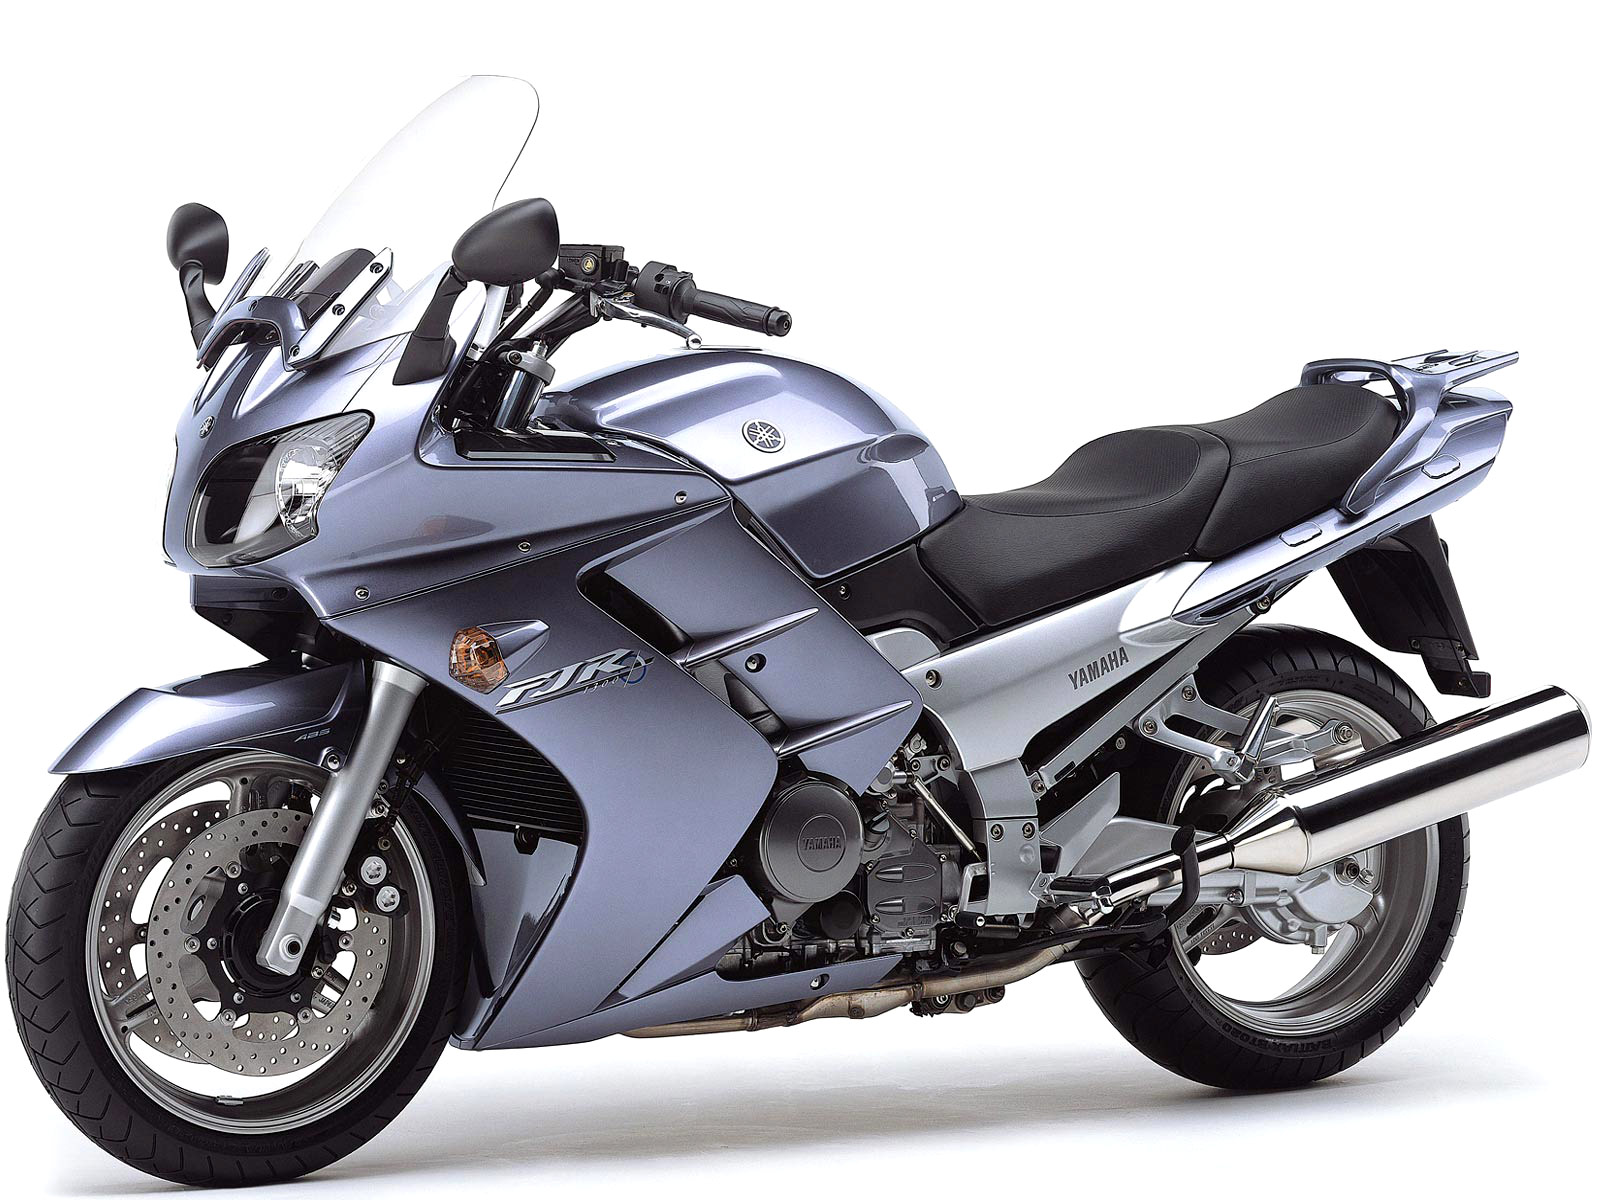 Yamaha FJR 1300 2005 Motorcyle wallpapers